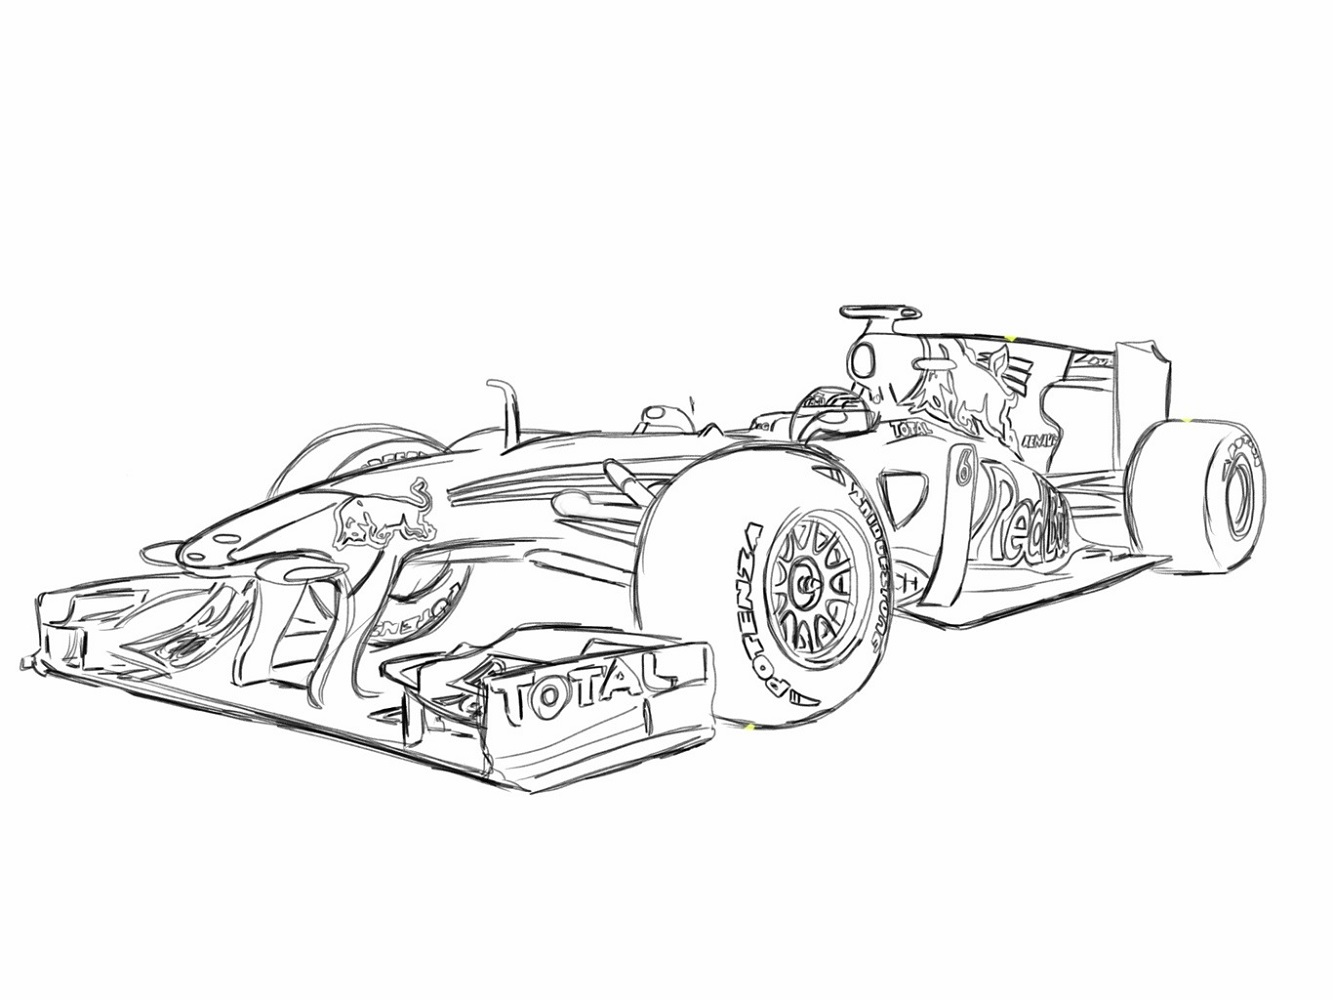 indy 500 coloring pages free indy car coloring pages download free clip art free pages indy coloring 500